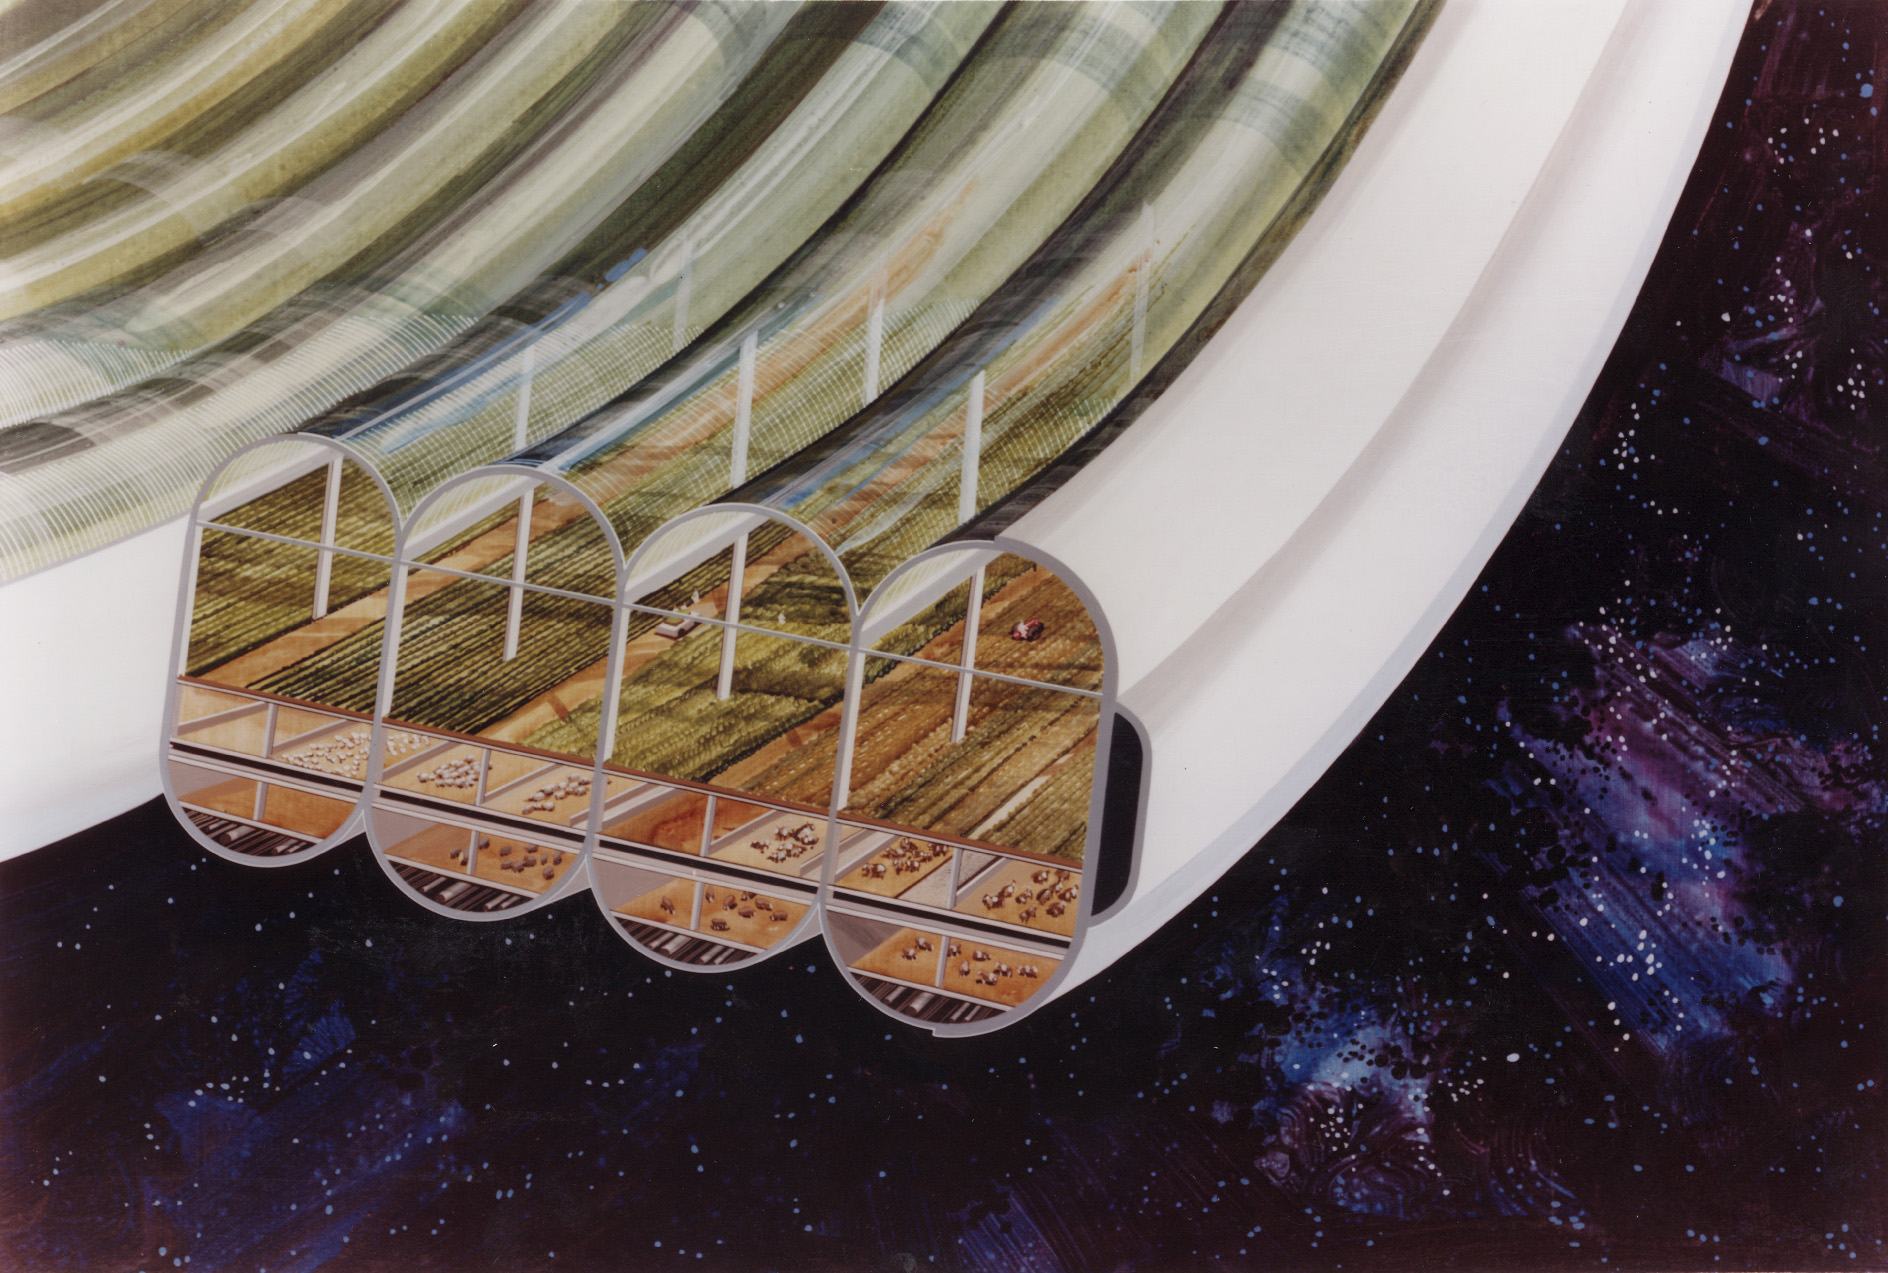 View of Bernal Sphere agricultural module (multiple toroids) with cutaway to expose interior